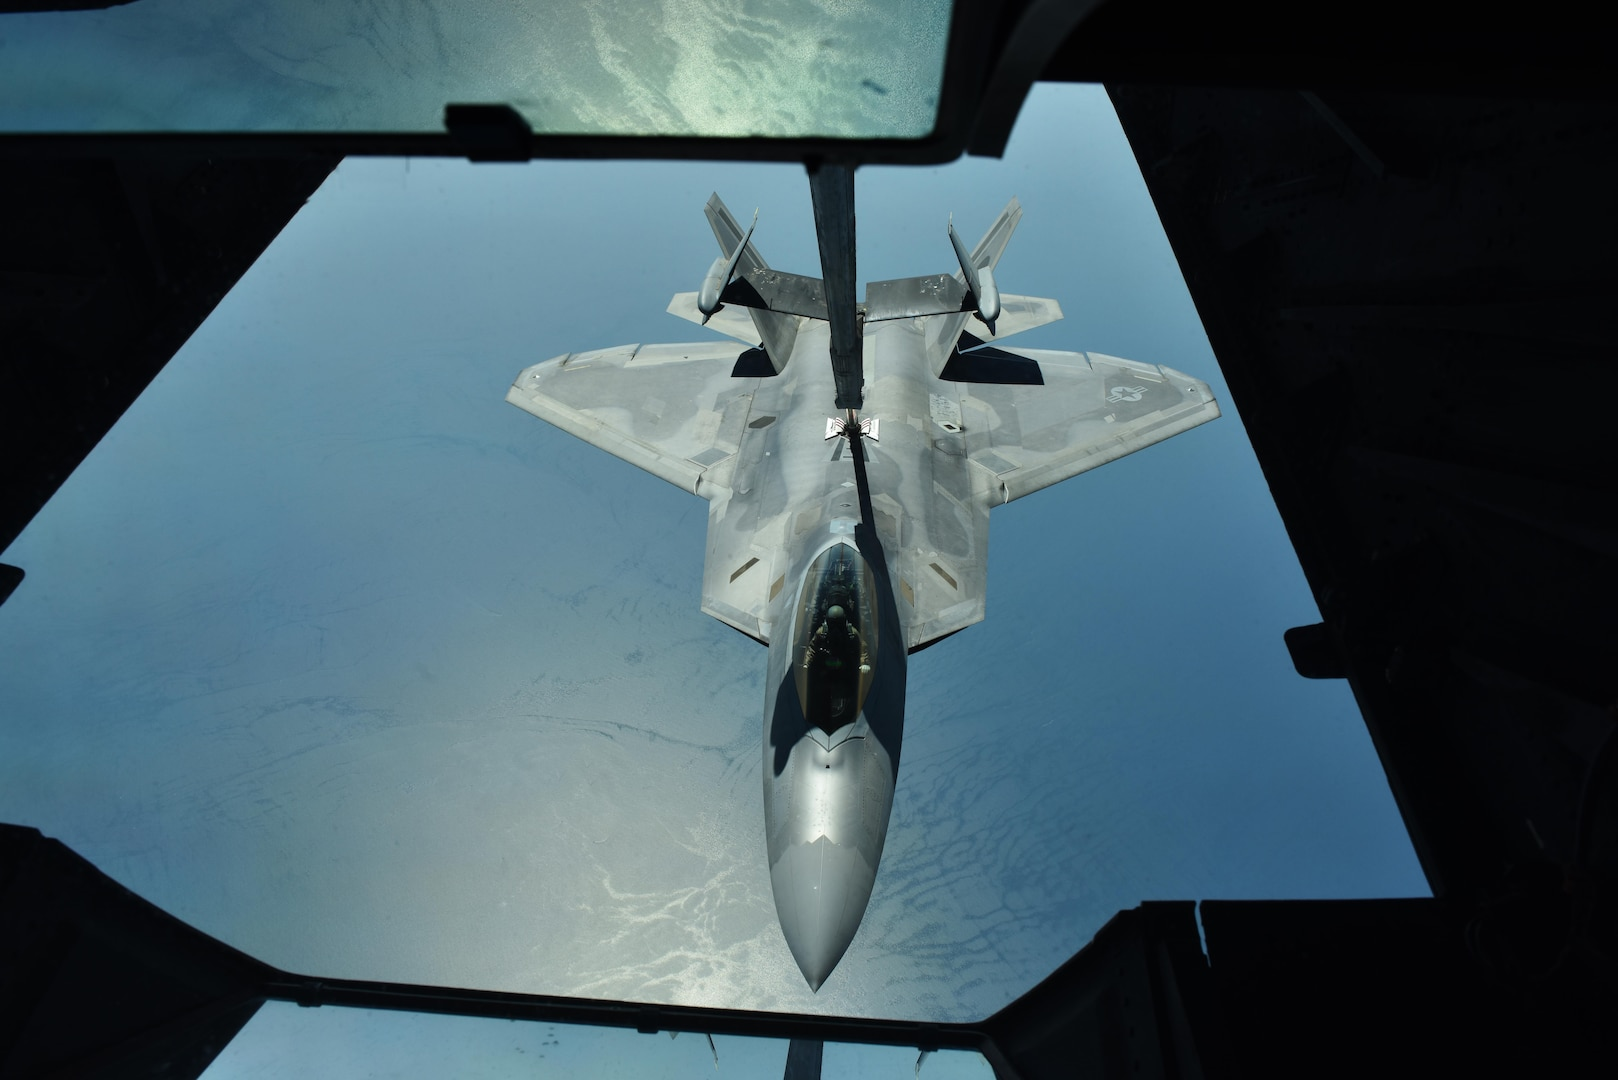 Lt. Gen. Jeffrey L. Harrigian, commander of U.S. Air Forces Central Command, refuels his F-22A Raptor from a KC-10 Extender over the Persian Gulf, June 30, 2017. Harrigian served as the wingman of outgoing 380th Air Expeditionary Wing Commander Brig. Gen. Charles S. Corcoran during his fini-flight. The two generals flew in support of Combined Joint Task Force-Operation Inherent Resolve and the fight against ISIS. (U.S. Air Force photo by Staff Sgt. Marjorie A. Bowlden)